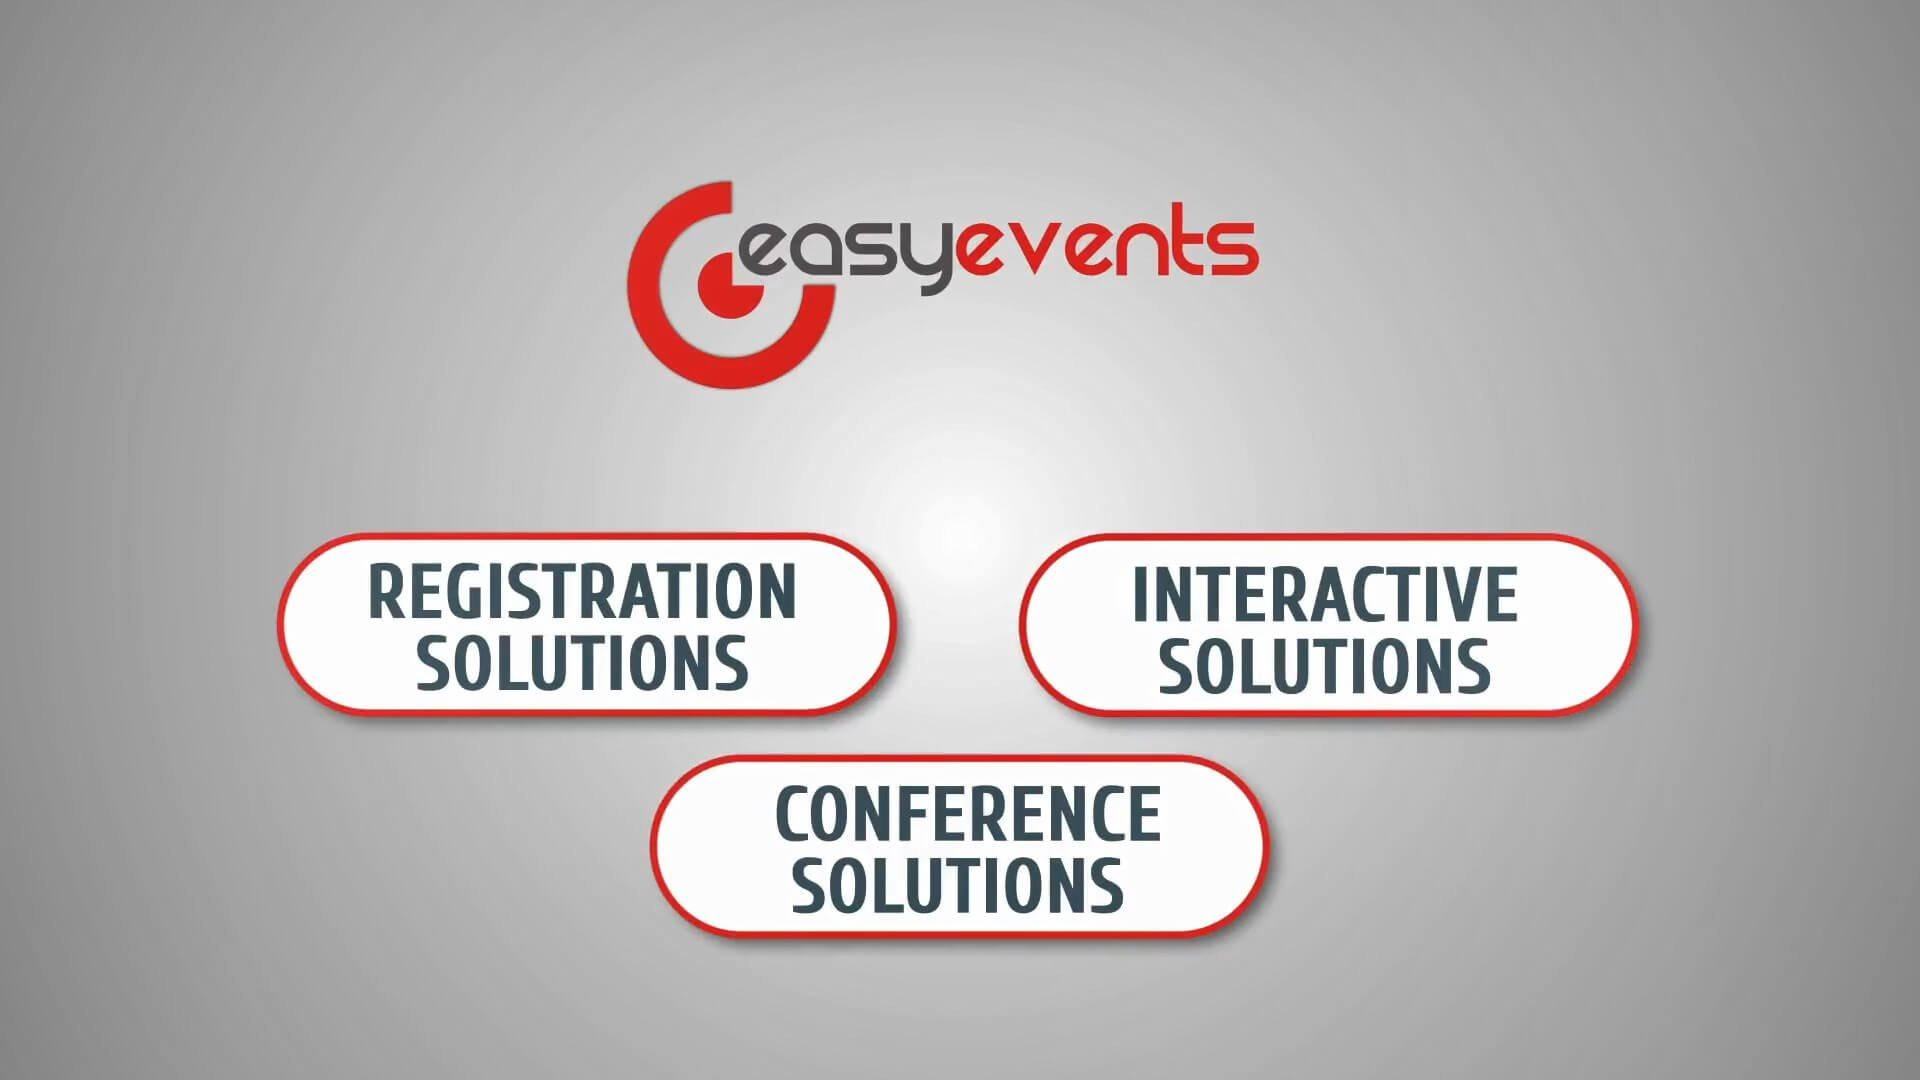 EasyEvent5 1920x1080 - Easy Events Animasyon Filmi